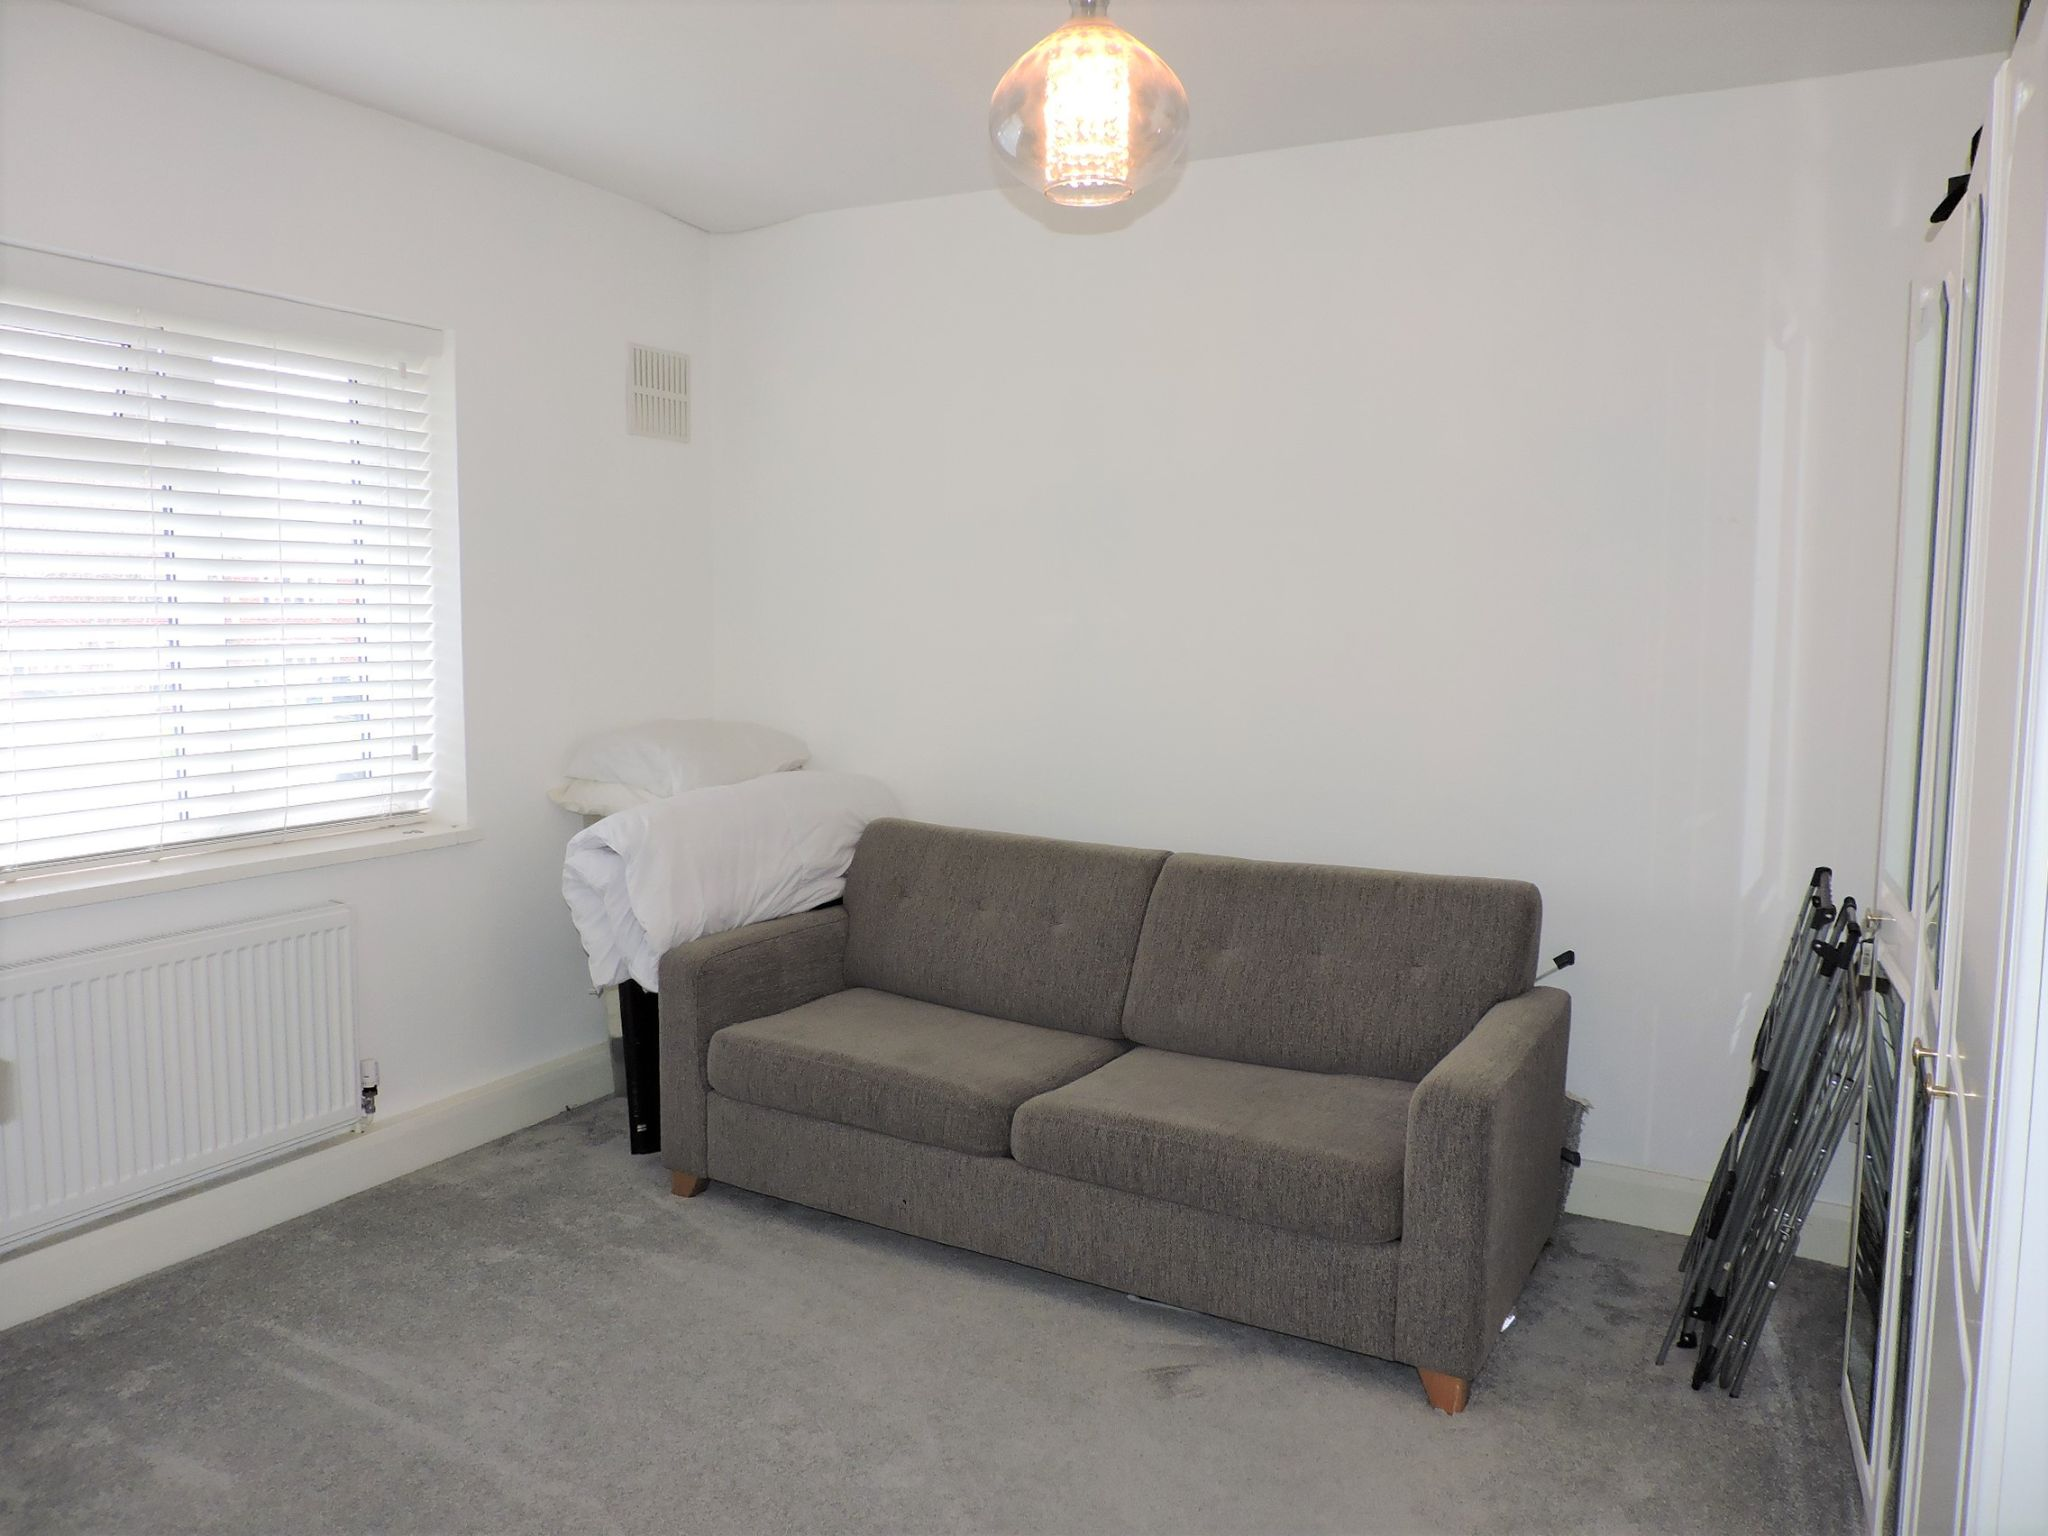 2 bedroom flat flat/apartment Sale Agreed in Epsom - Photograph 13